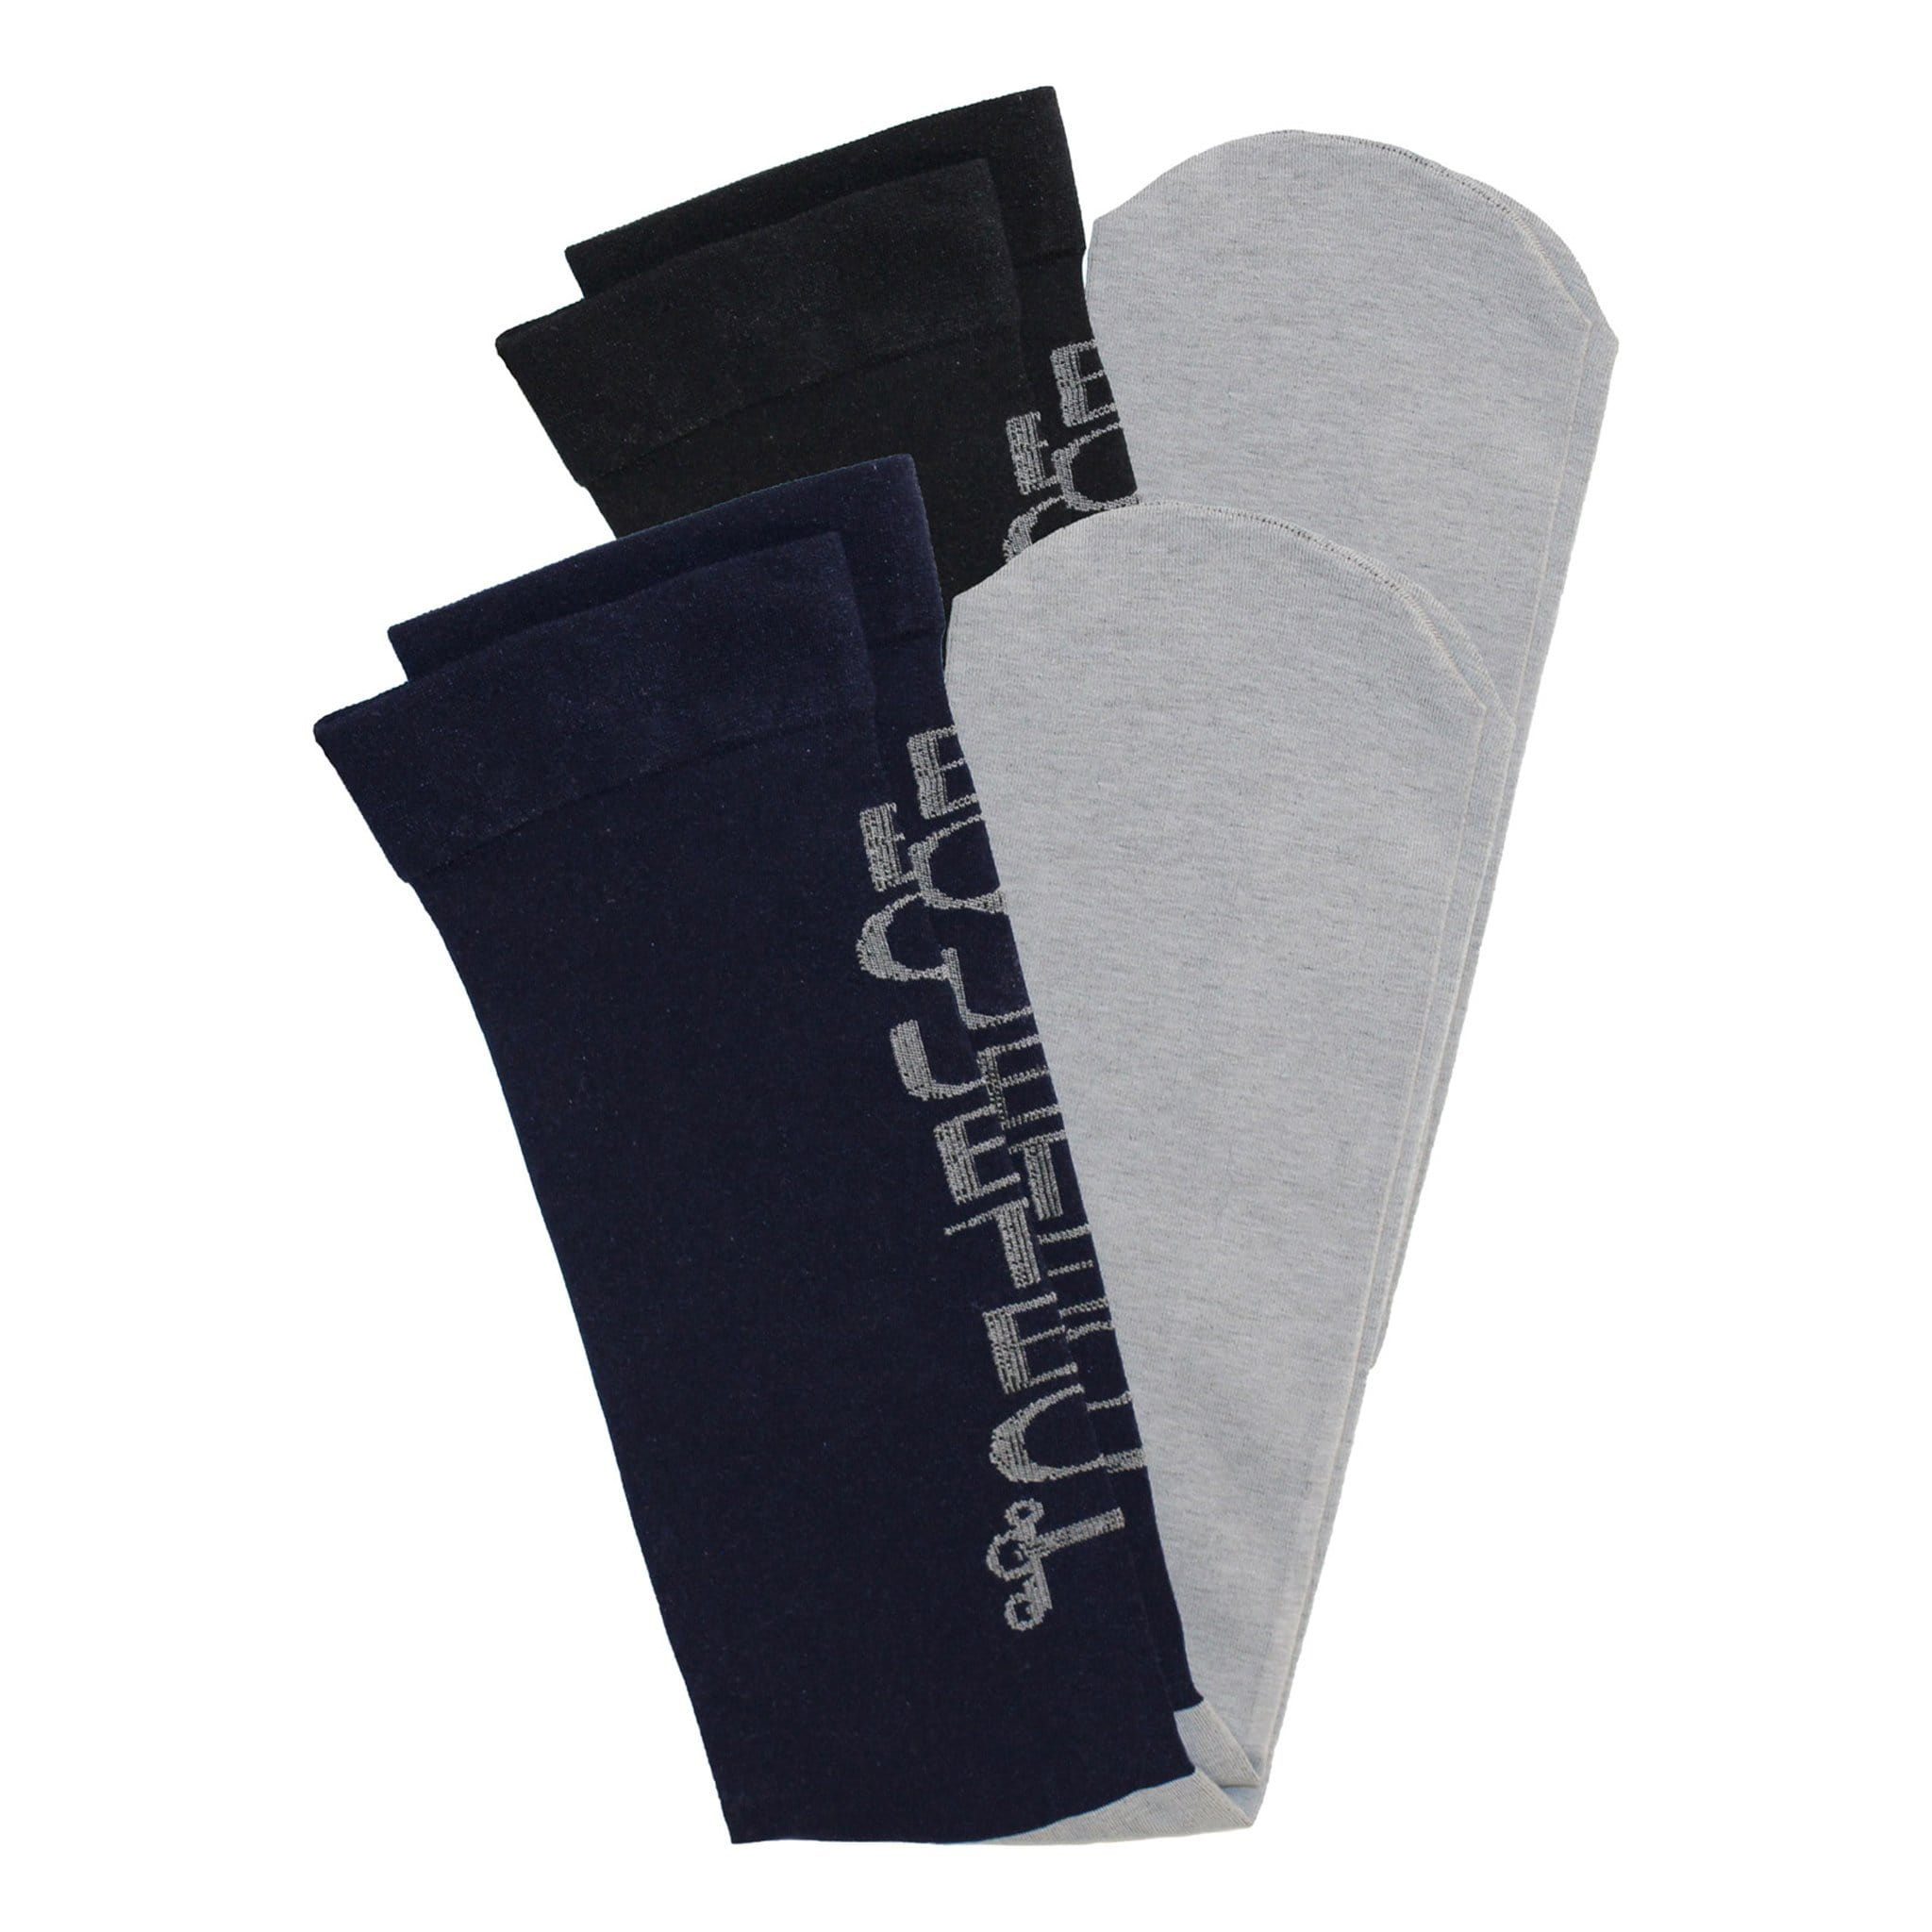 Equetech Performance Riding Socks 3 Pack SPX-1-MX.